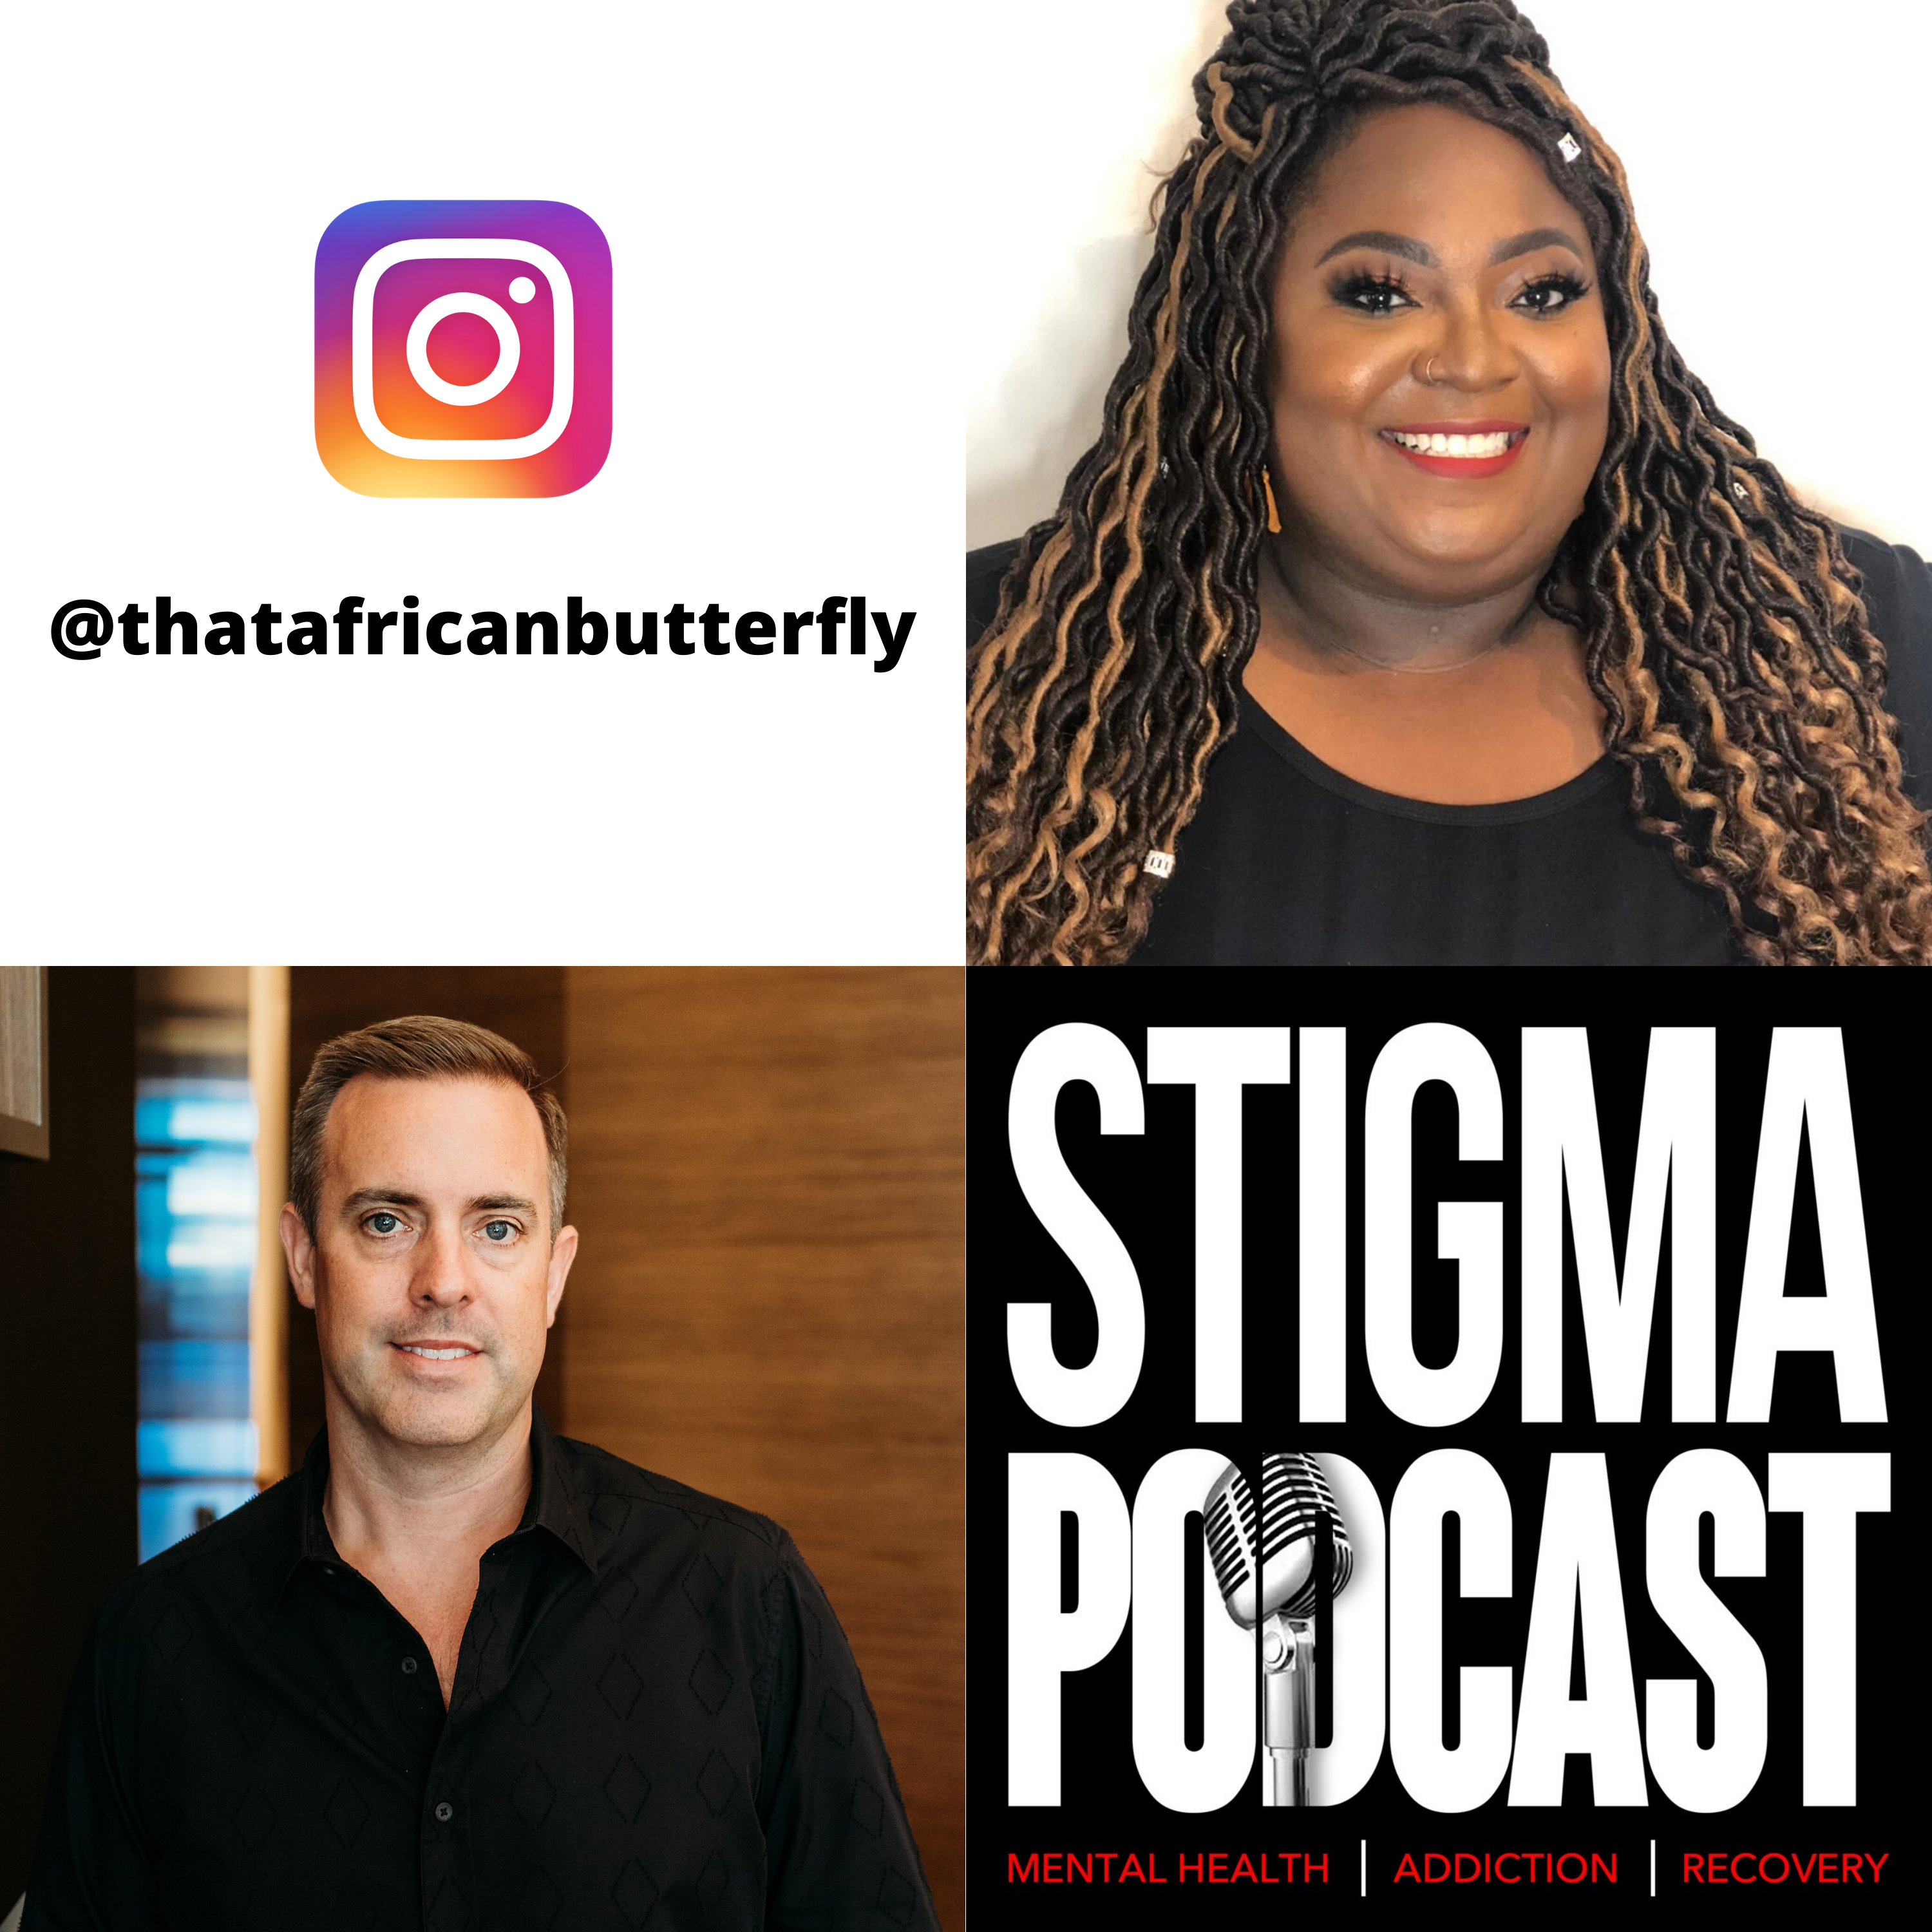 Stigma Podcast - Mental Health - #42 - It's Okay If You Need Meds to Be Okay - A Chat About Depression with Nyemade Boiwu